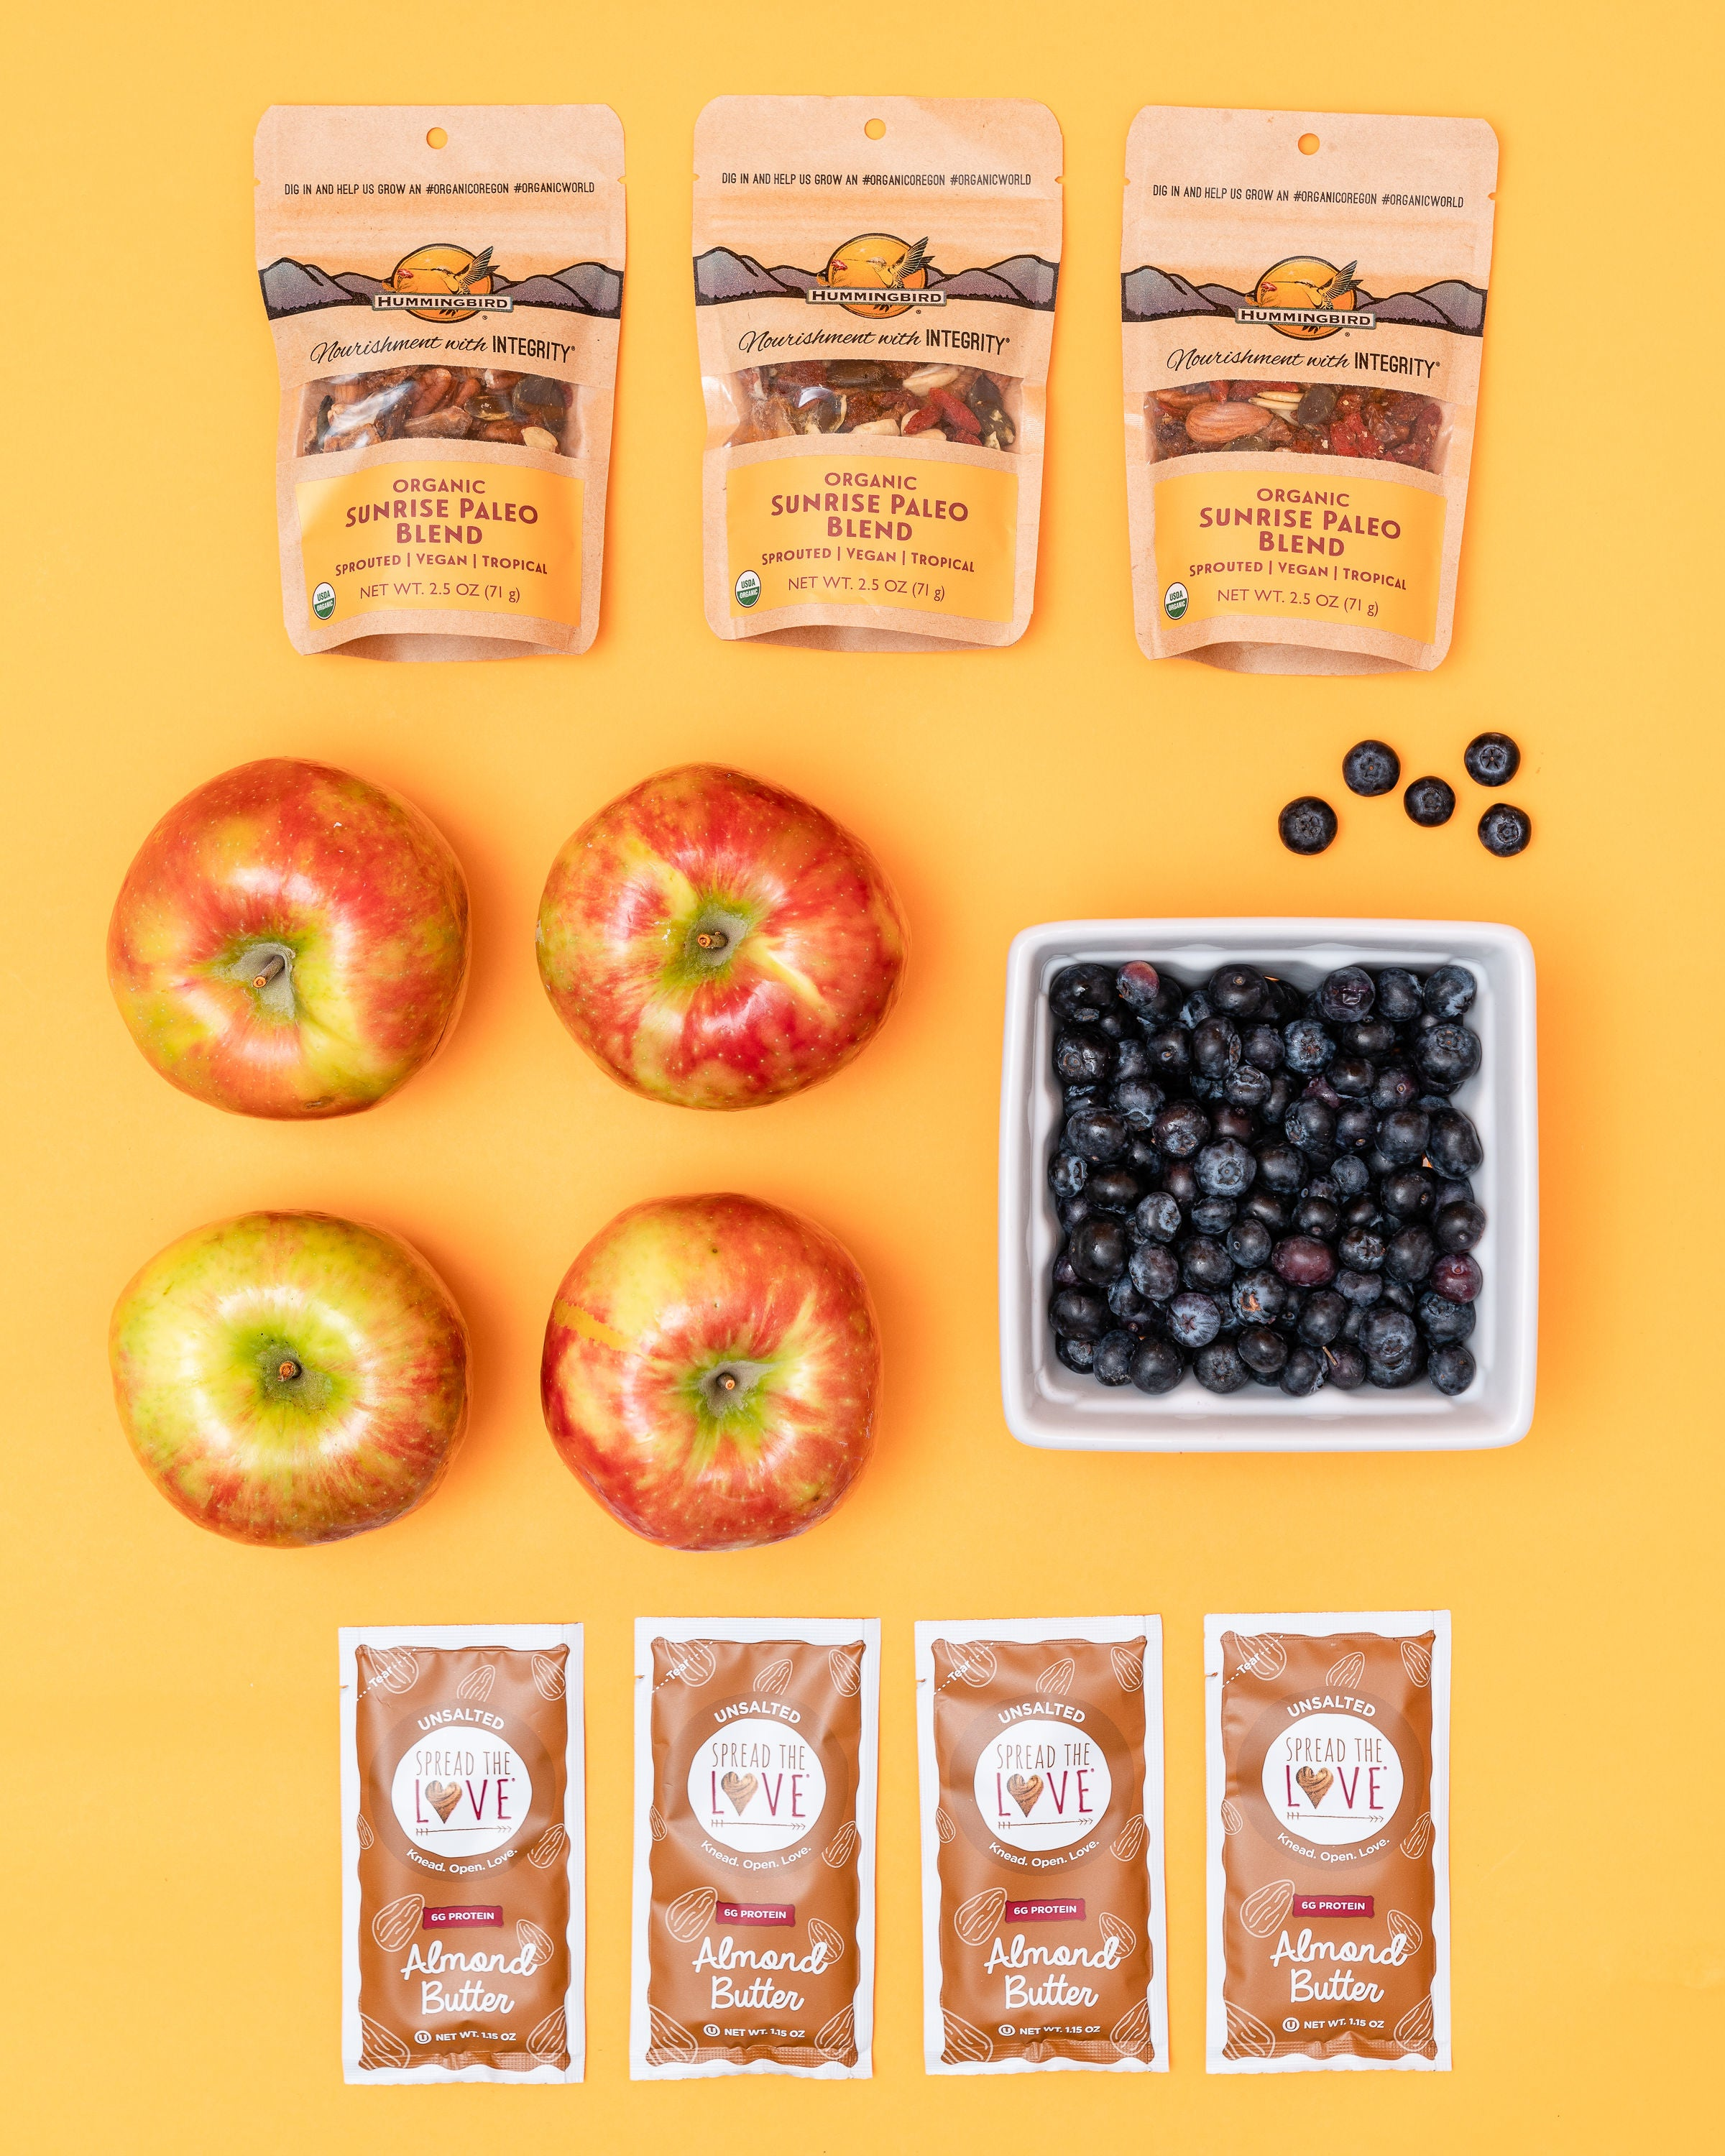 healthy snack fruit box with apples, blueberries, nuts, and almond butter